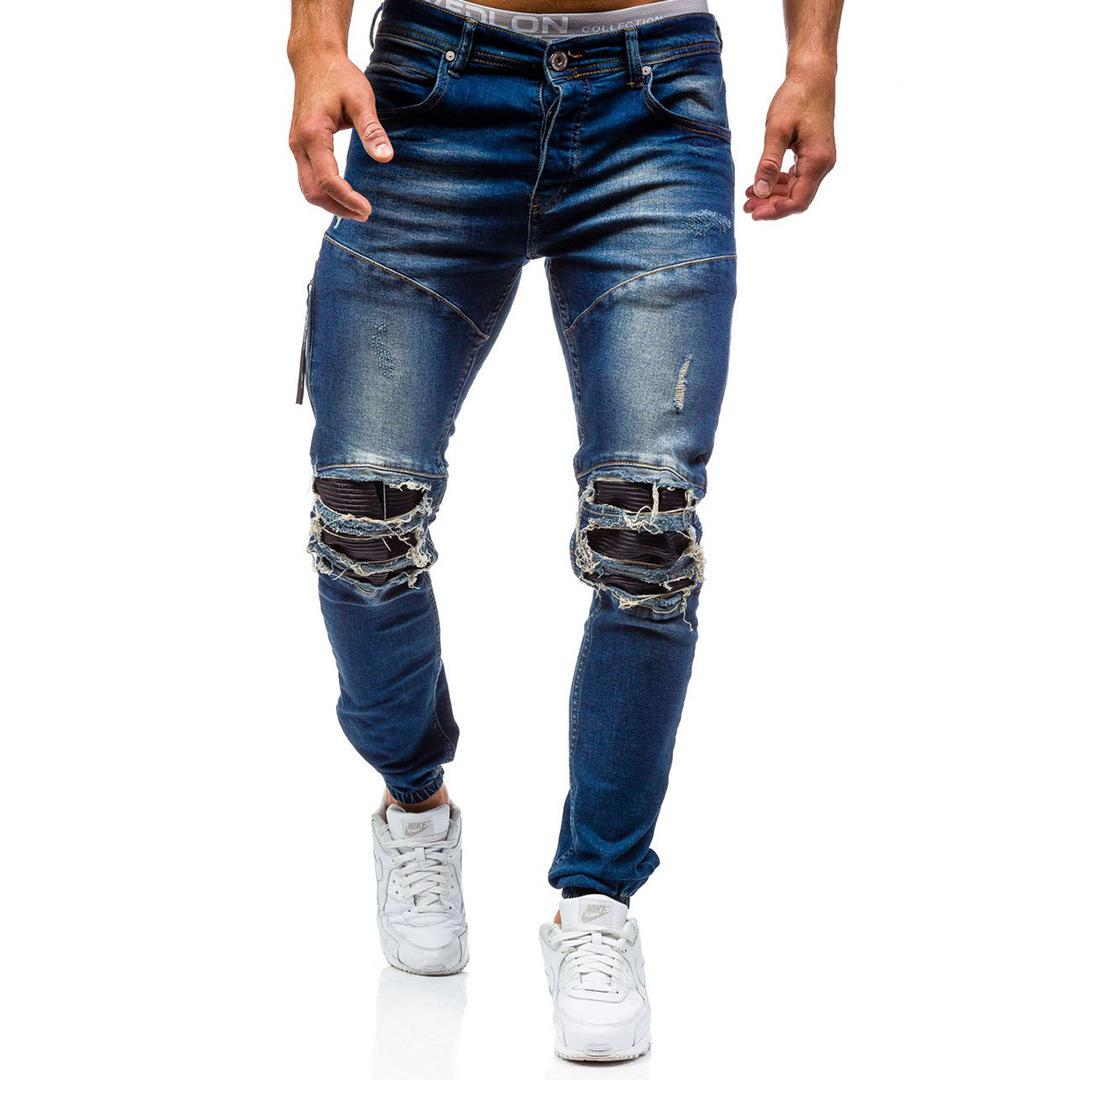 c528a4dc0af 2019 Dark Blue Skinny Ripped Jeans For Men Big Hole Distressed Repaired  Tight Pant Slim Fit Stretch Dark Washed Jeans From Xunmi